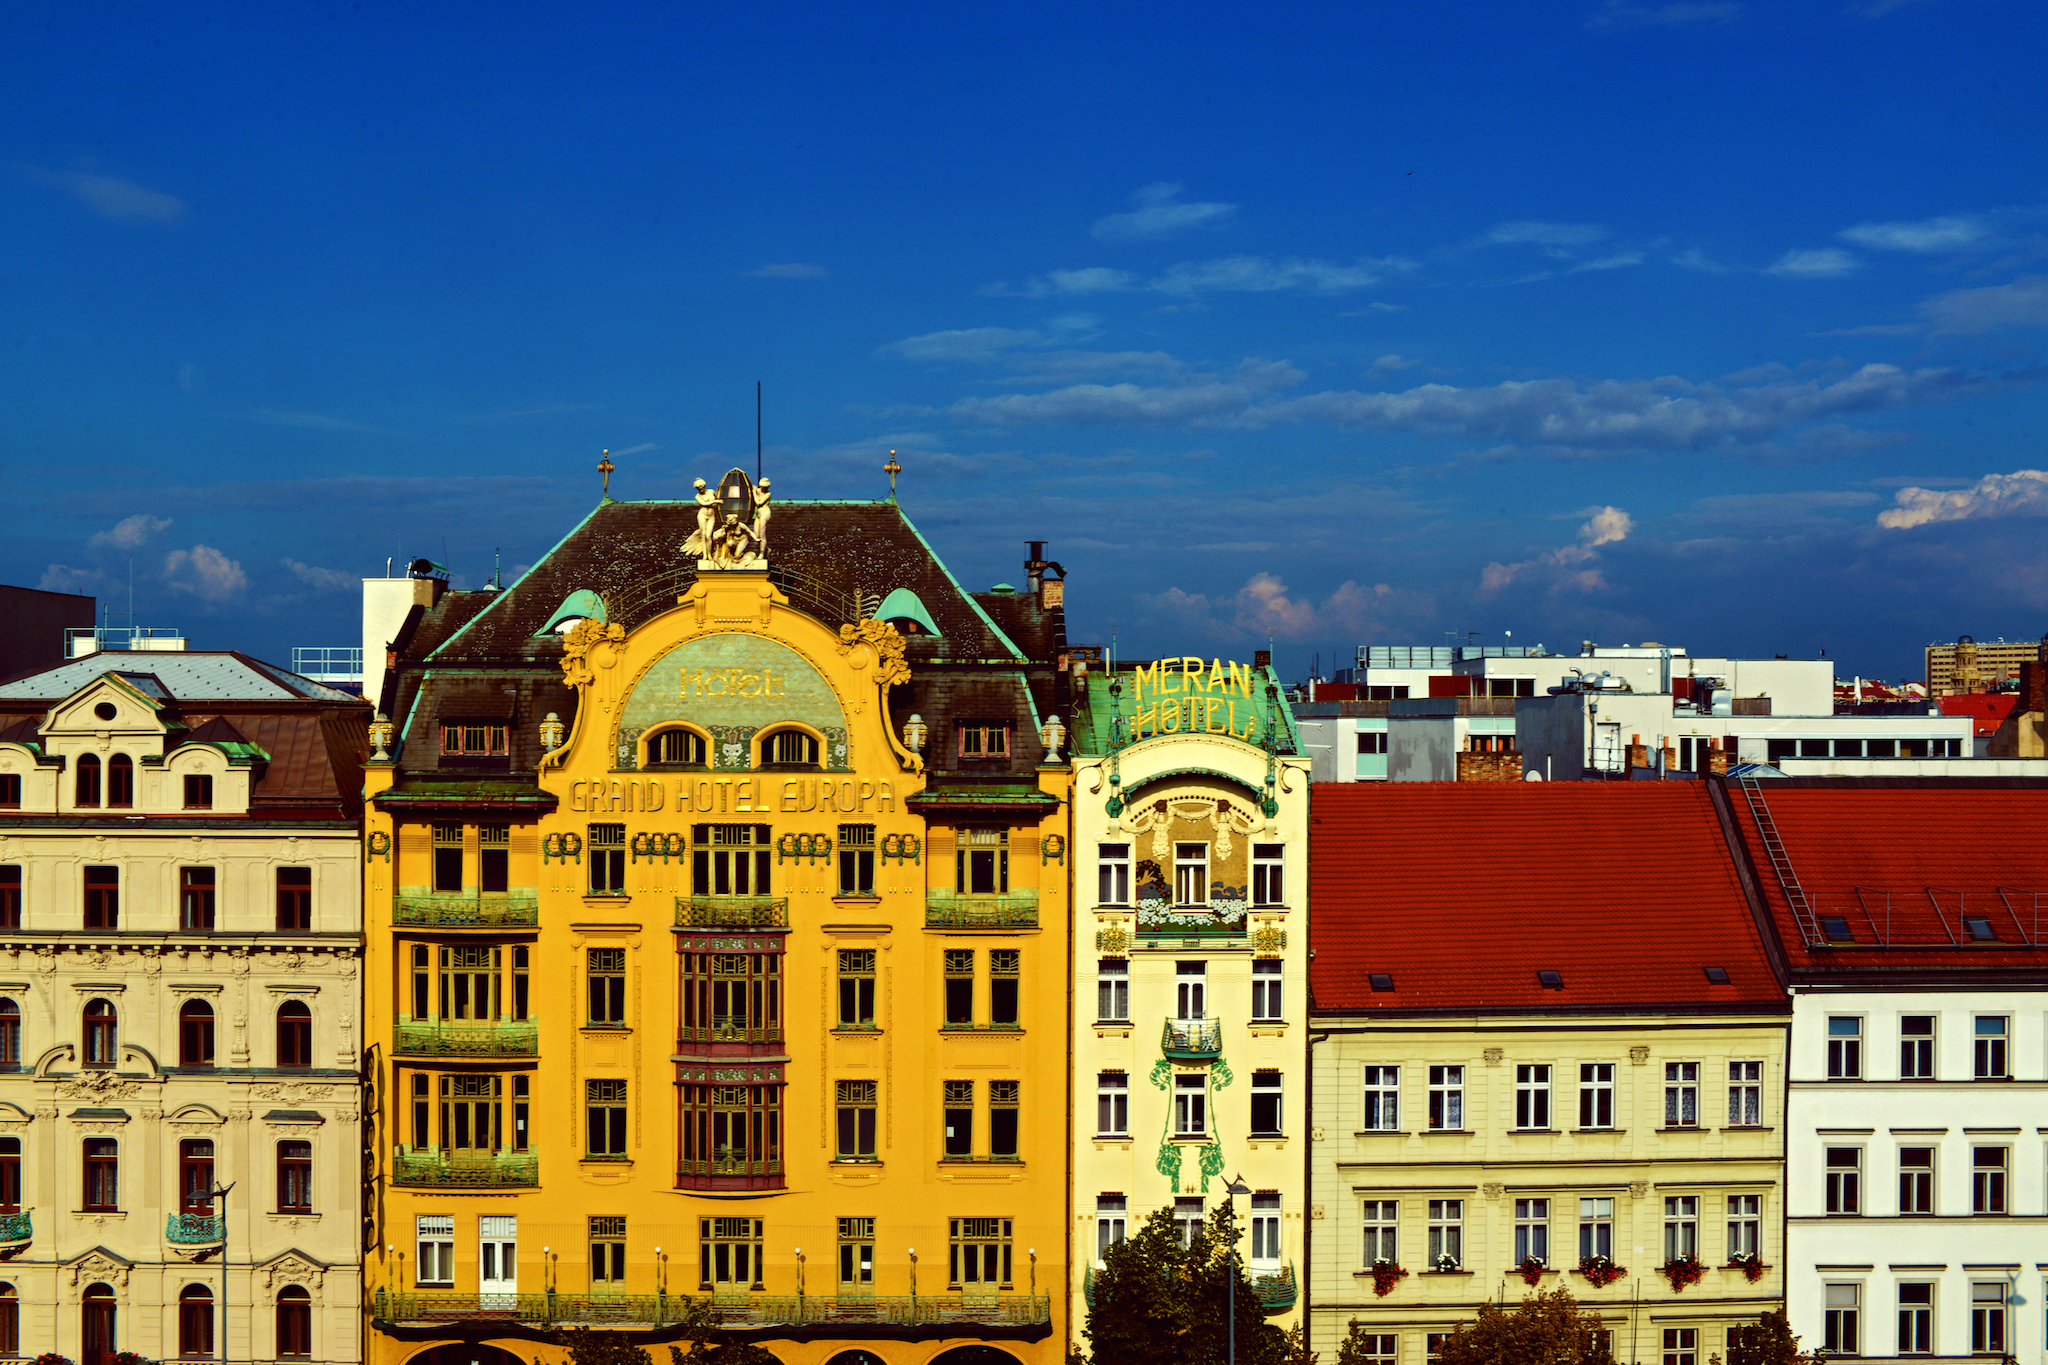 Hotel Meran | Prague 1 | Welcome to Hotel Meran